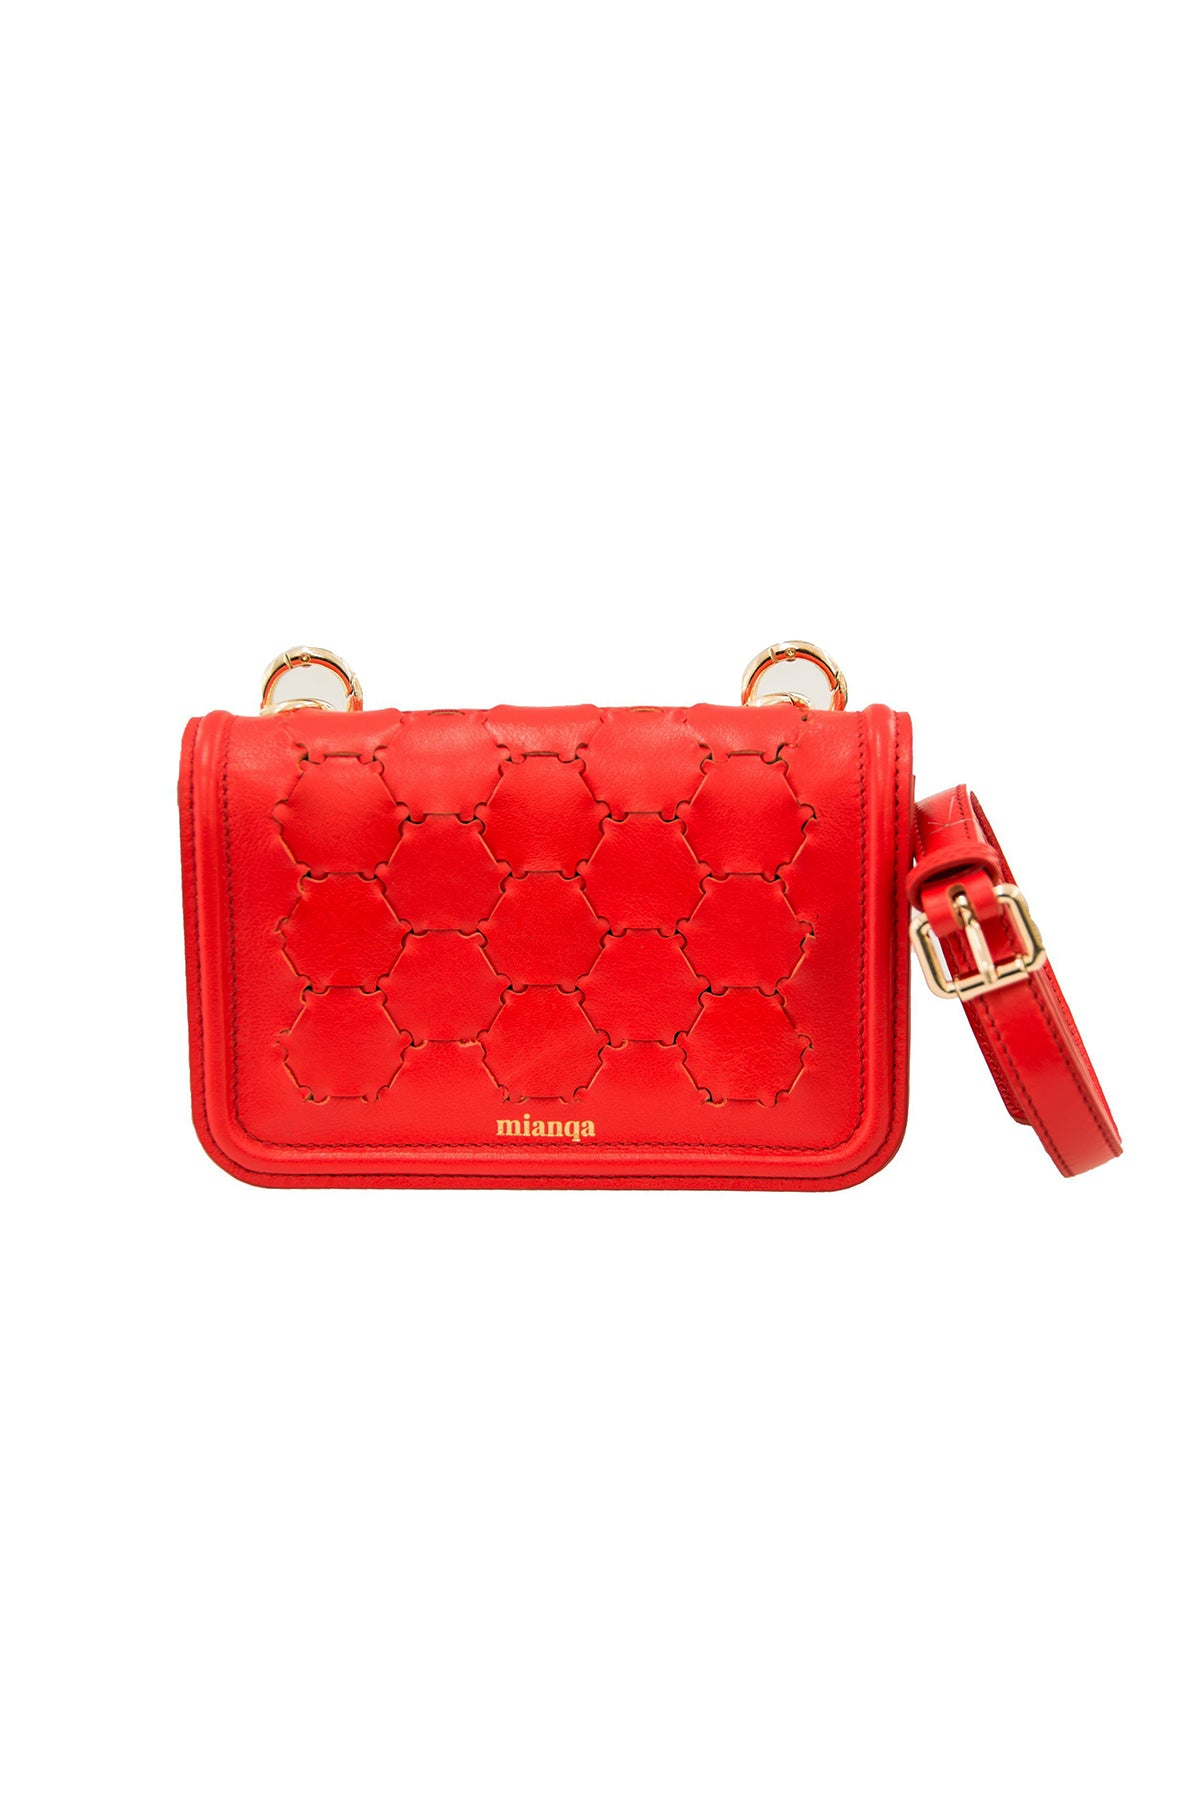 S E M I H A | Belt Bag Red